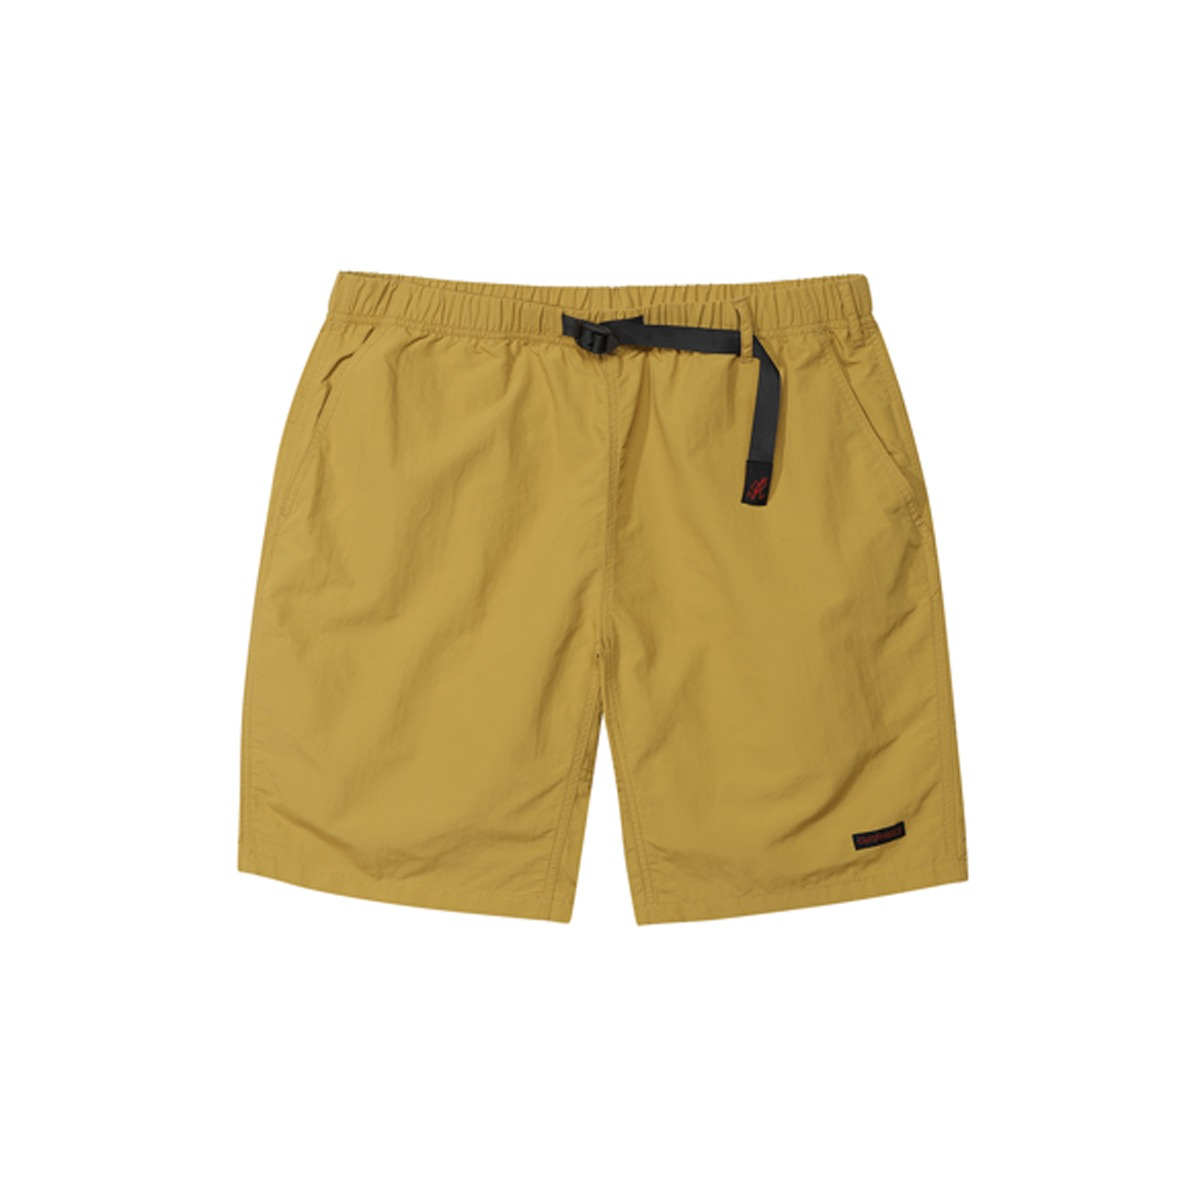 [GRAMICCI] SHELL PACKABLE SHORTS 'MUSTARD'